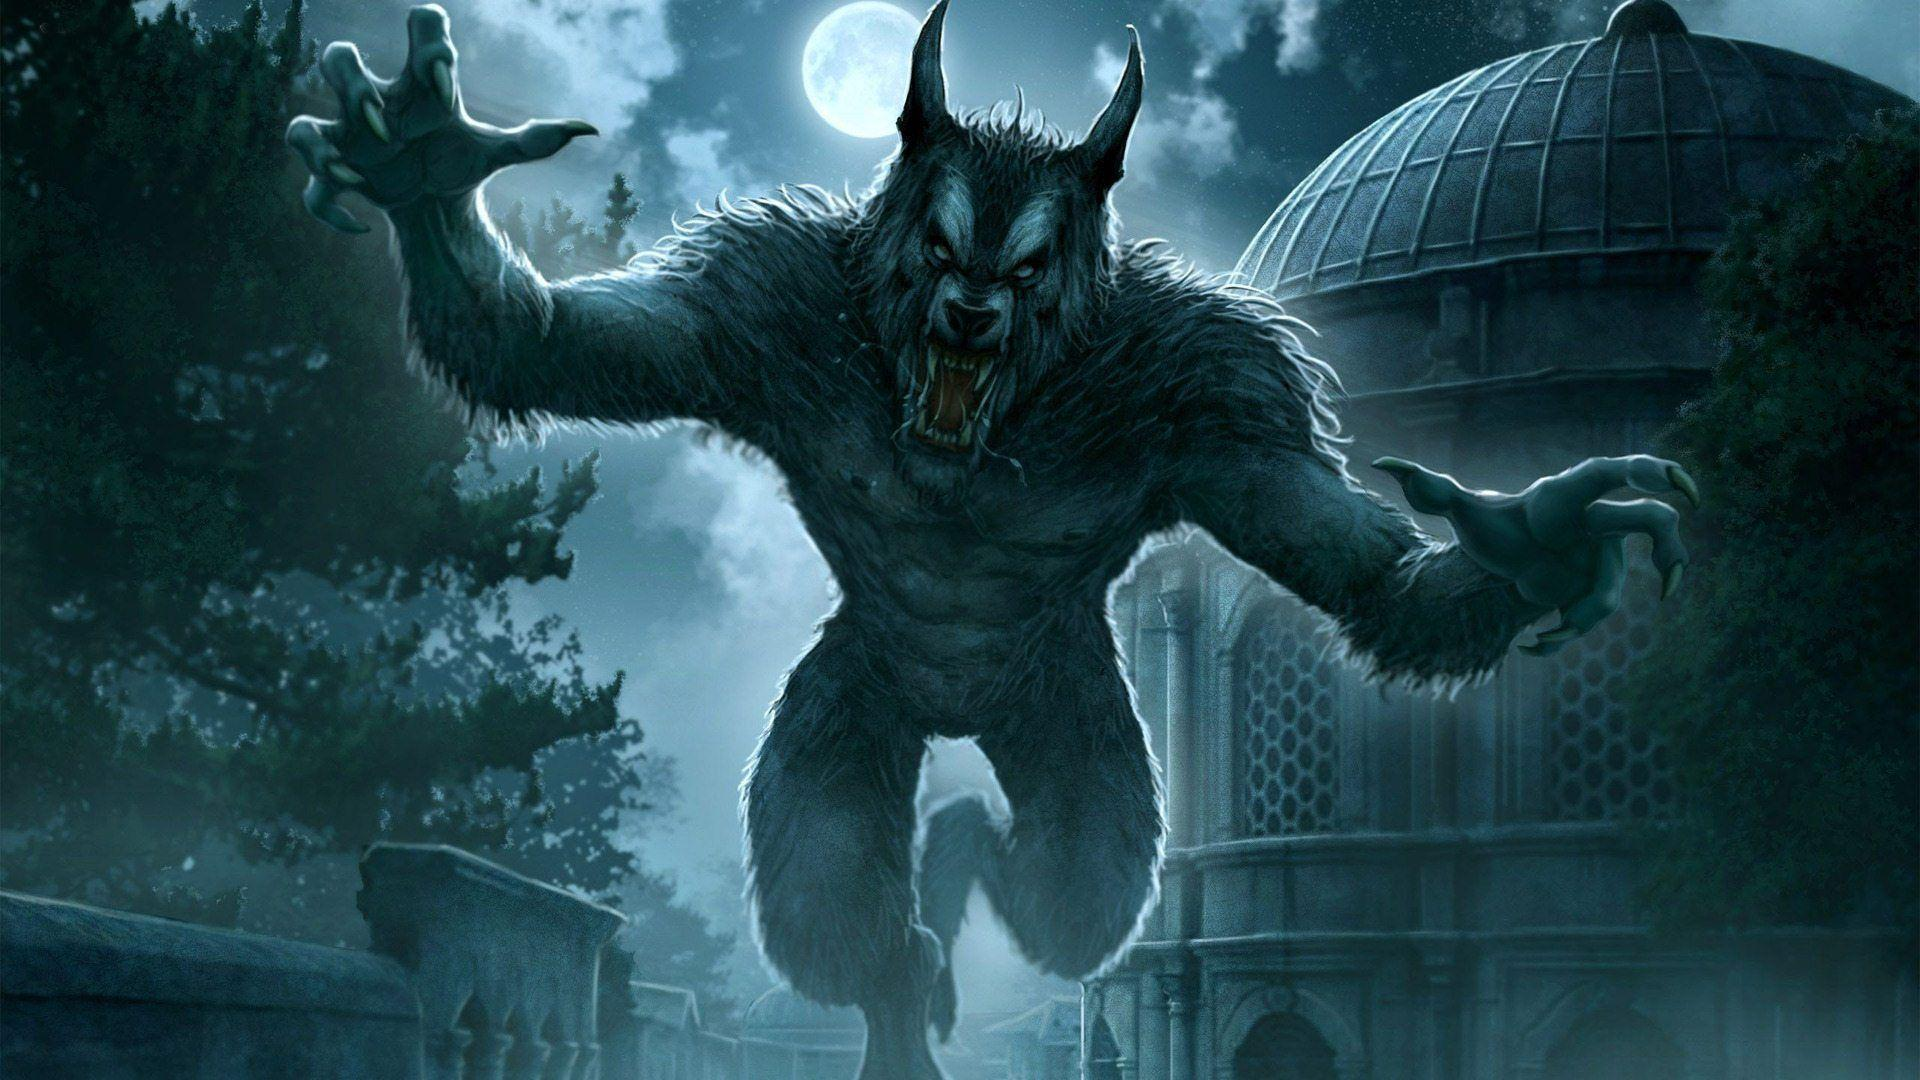 Werewolf Photos Free Wallpapers For Phone HD